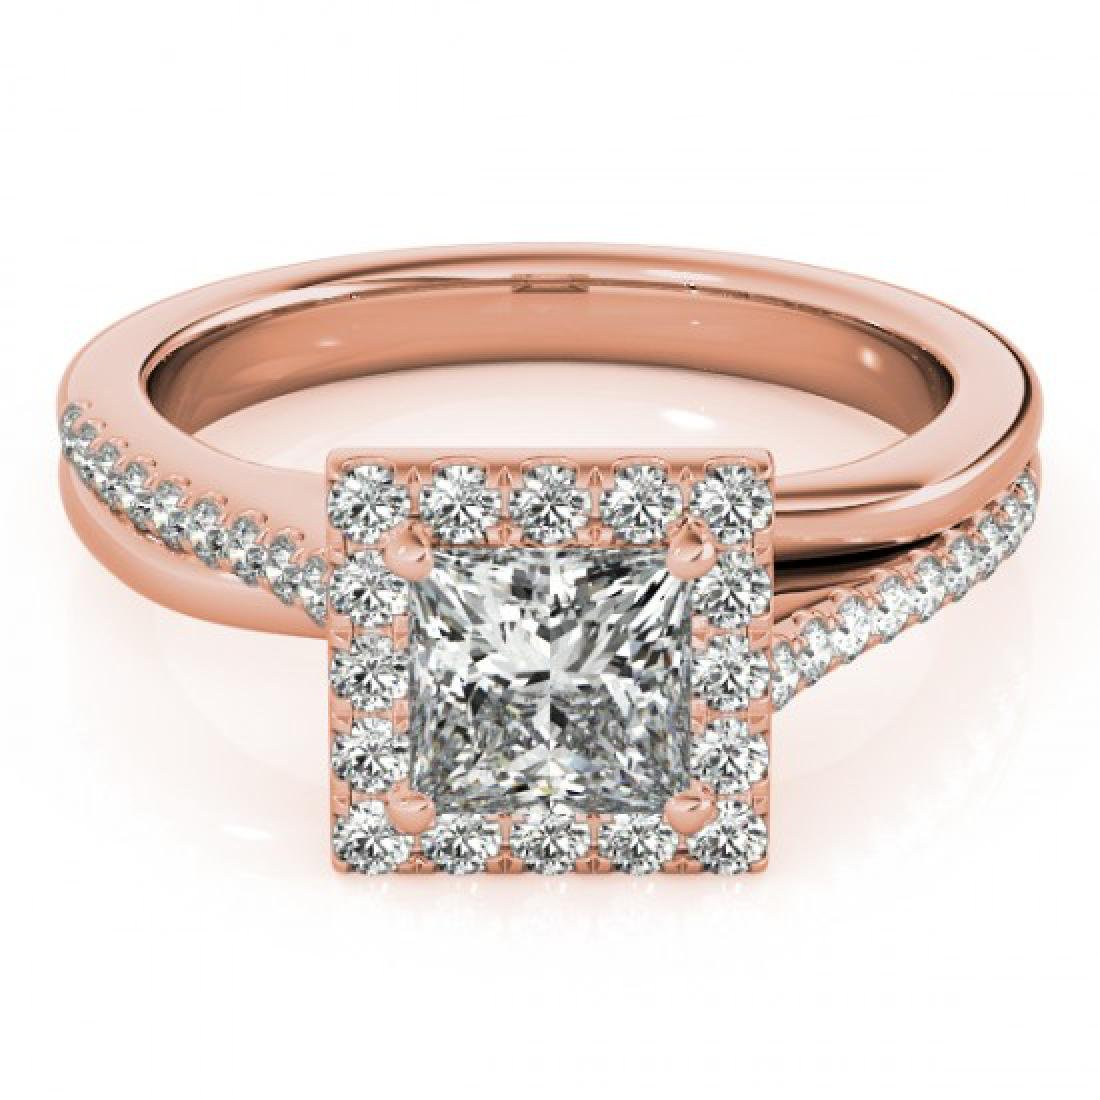 1.5 CTW Certified VS/SI Princess Diamond Solitaire Halo